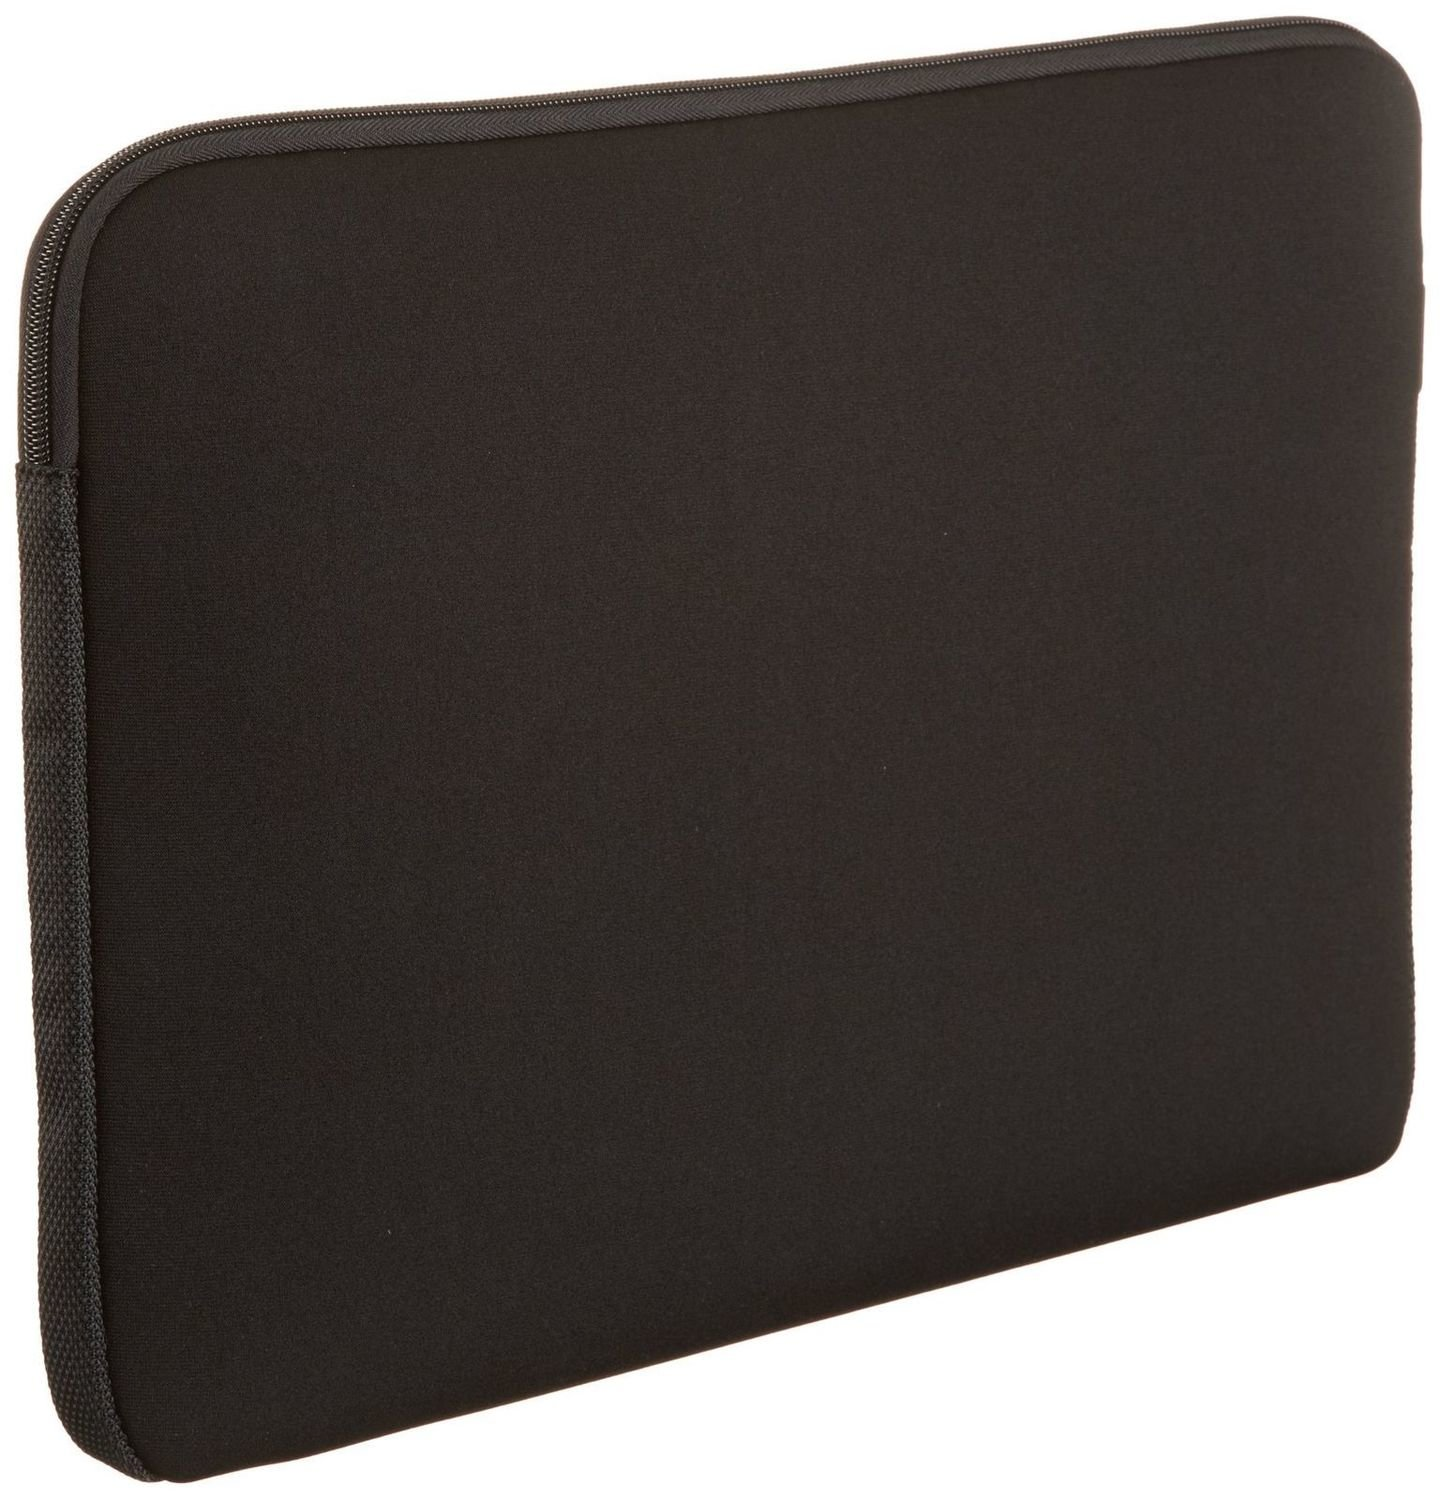 Basics 11.6-inch Laptop Sleeve Fee